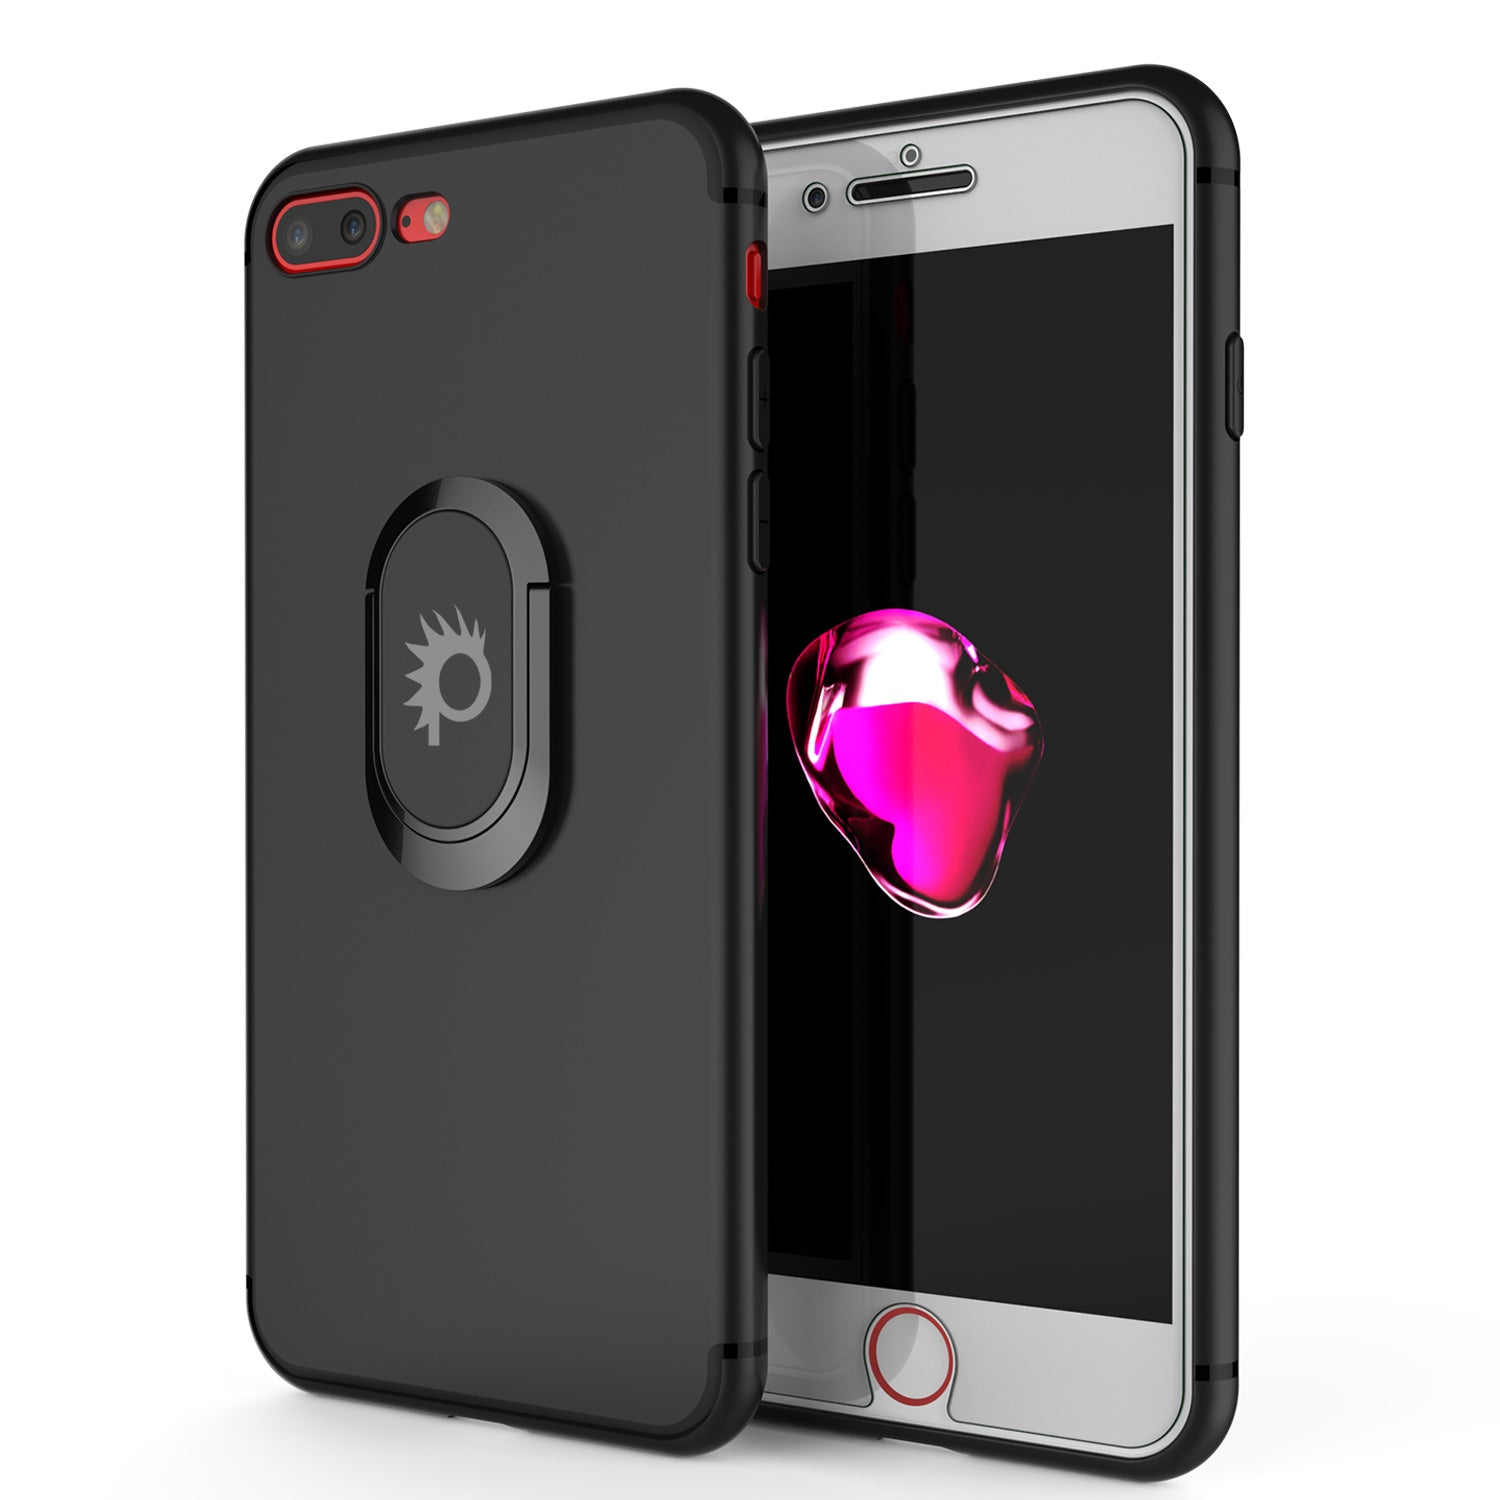 iPhone 8 PLUS Case, Punkcase Magnetix Protective TPU Cover W/ Kickstand, Tempered Glass Screen Protector [Black]